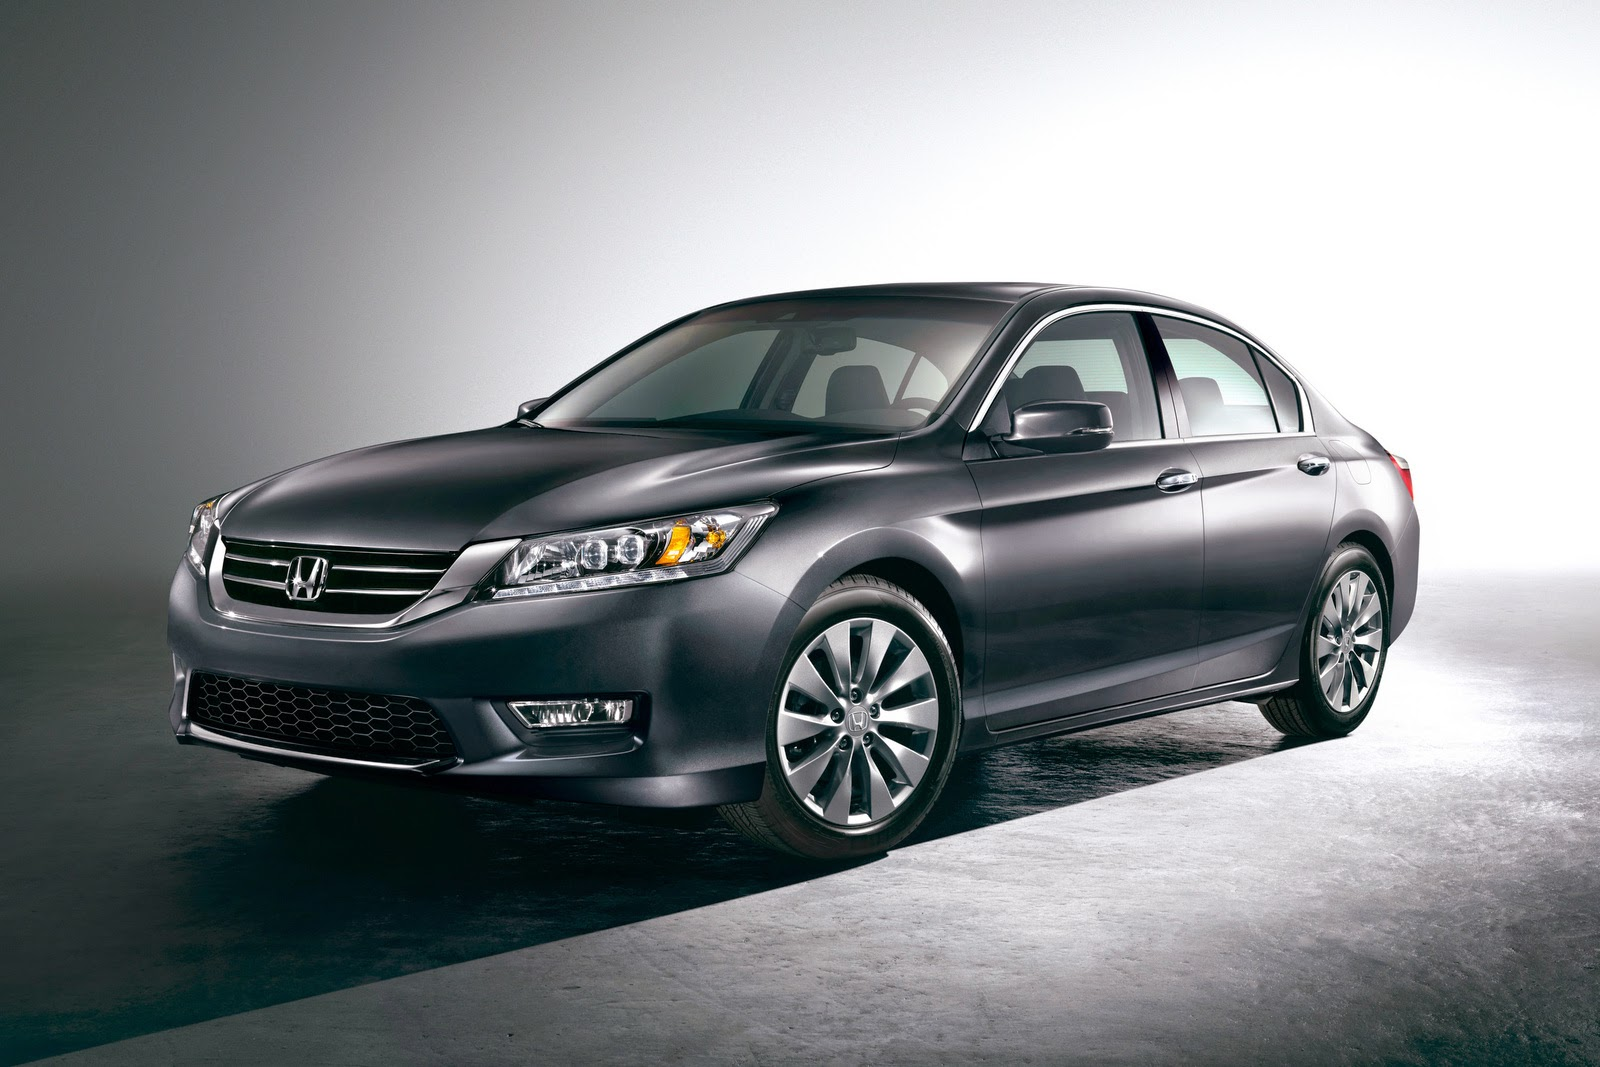 redesign the honda accord hybird last year 2015